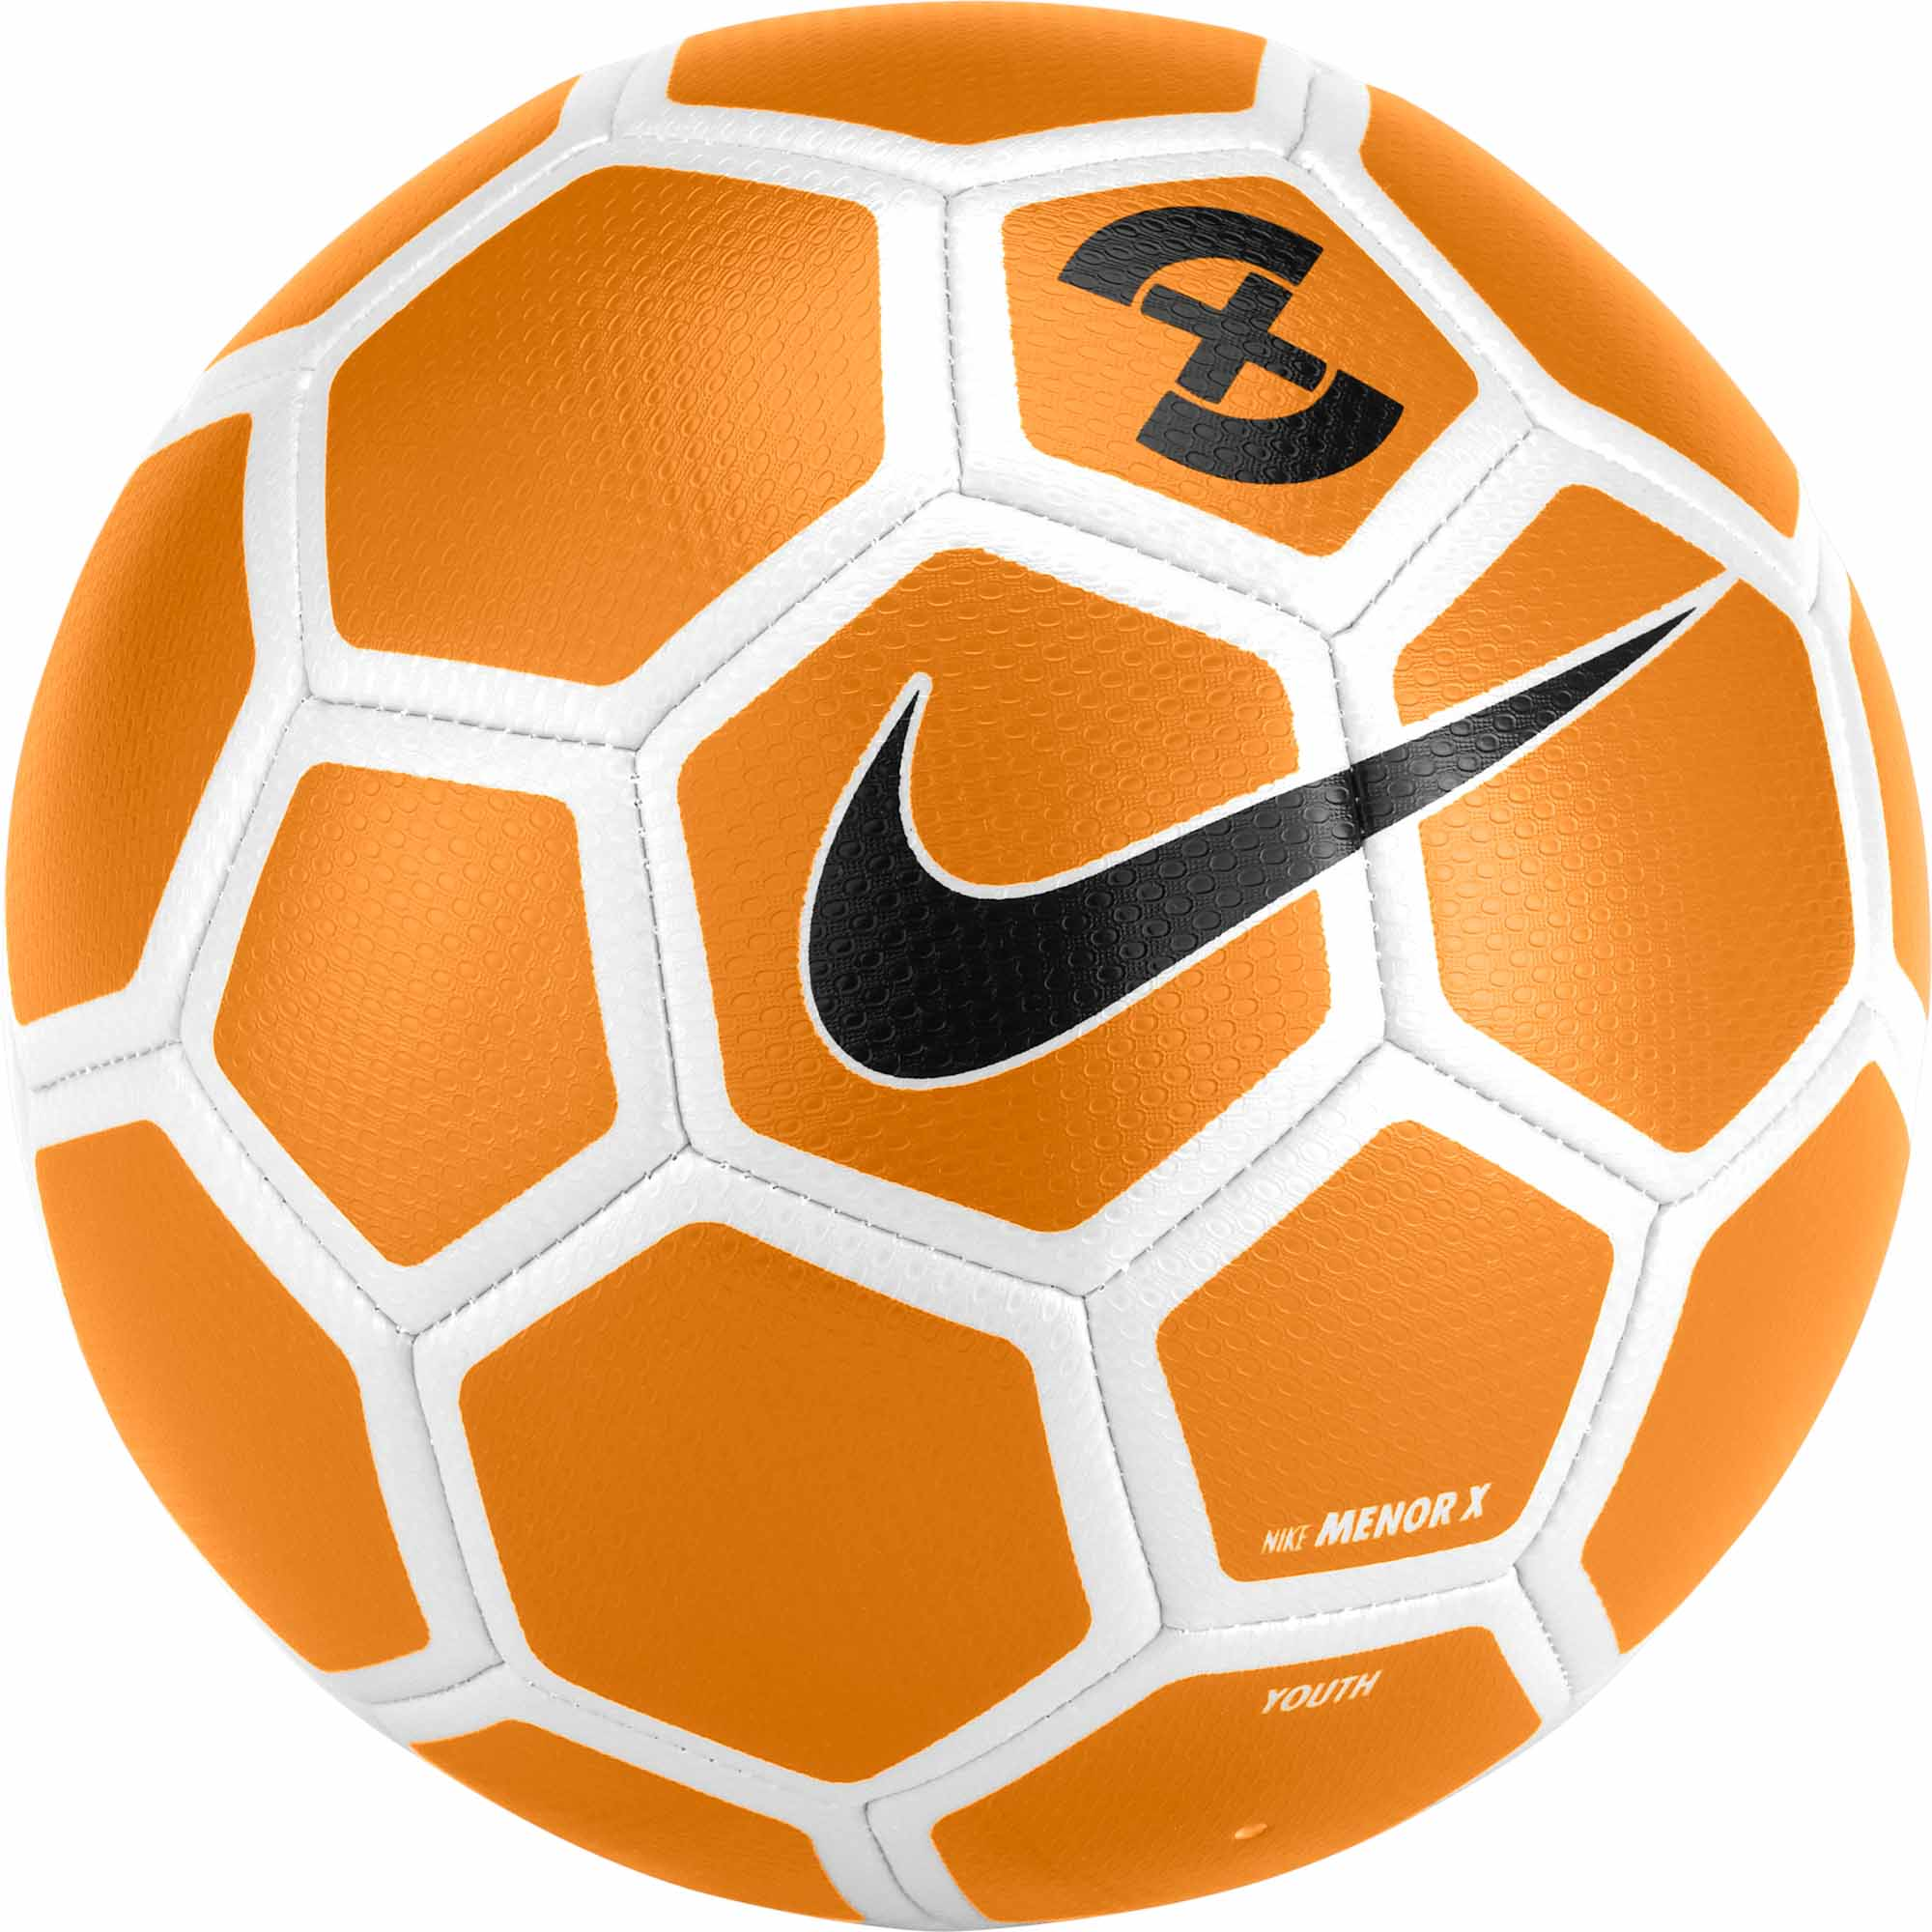 Nike Menor X Futsal Ball - Orange Nike Soccer Balls